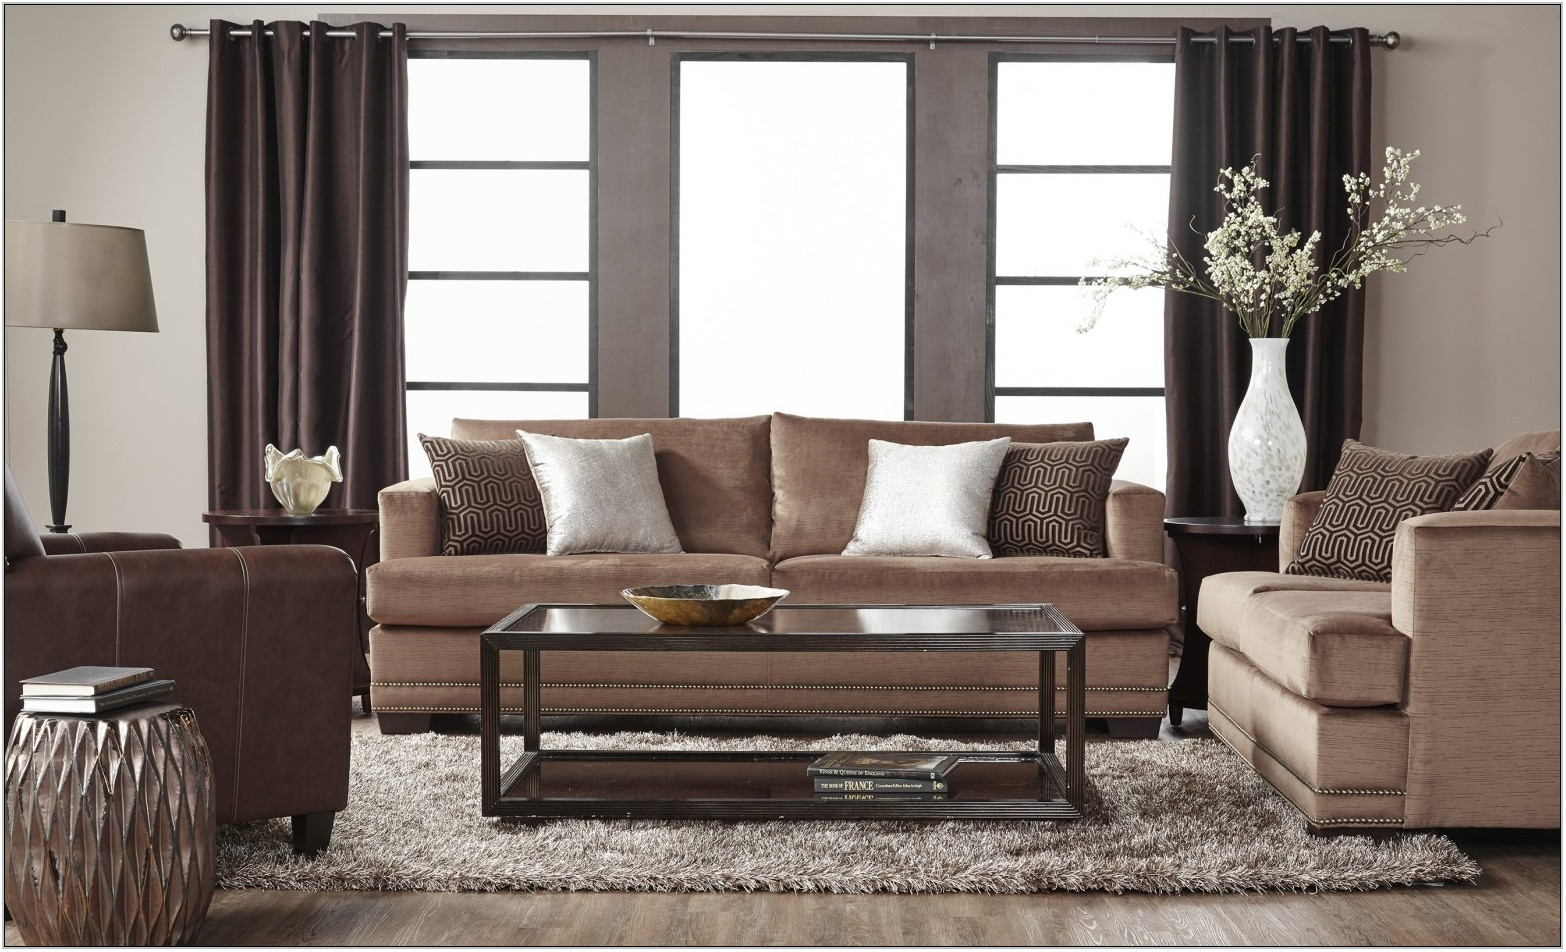 Serta Living Room Set